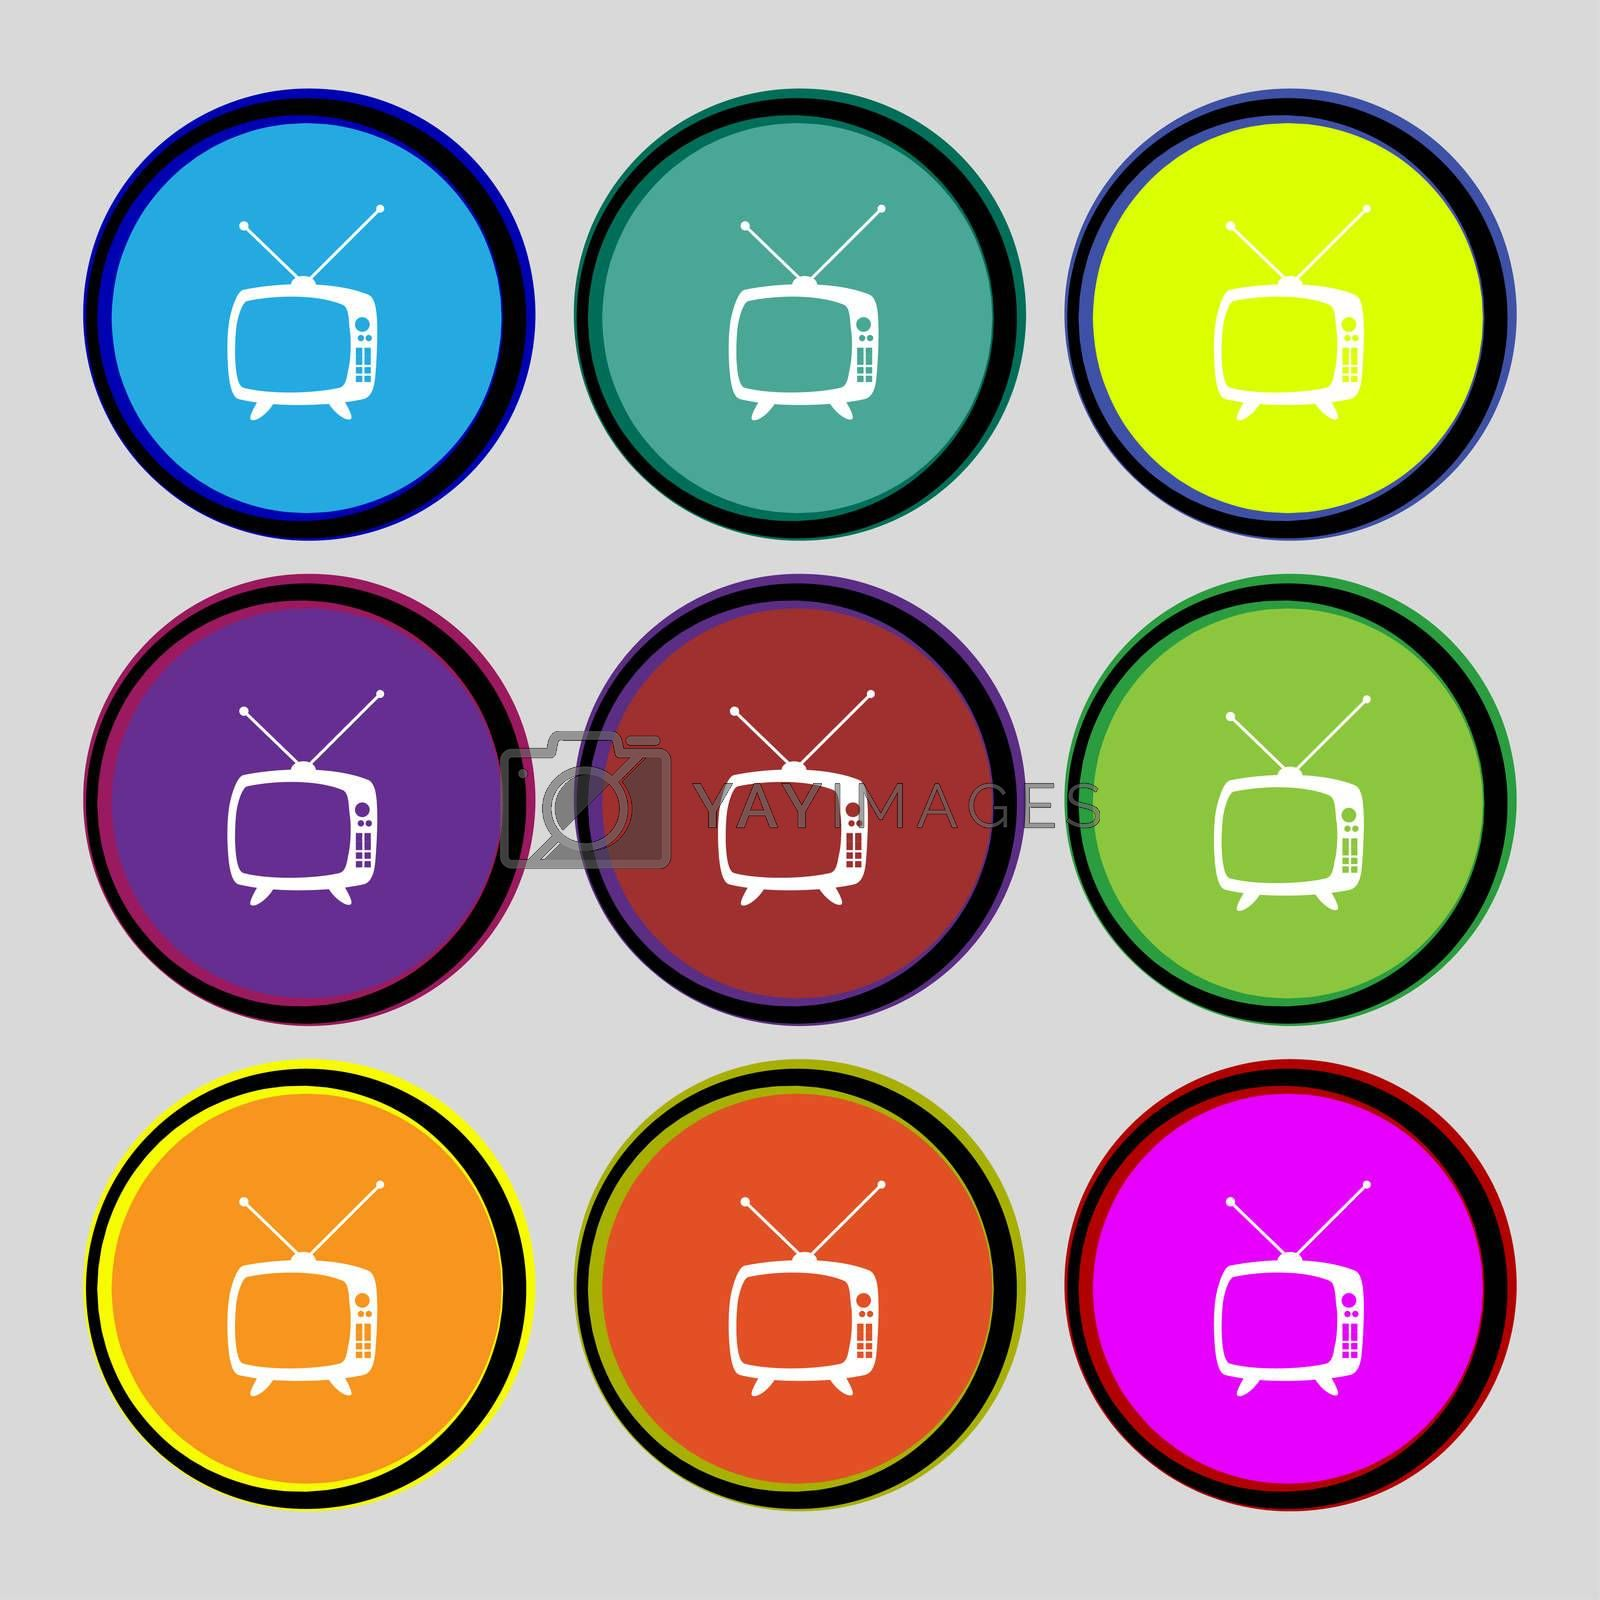 Retro TV mode sign icon. Television set symbol. Set colourful buttons. Hand cursor pointer  by Serhii Lohvyniuk